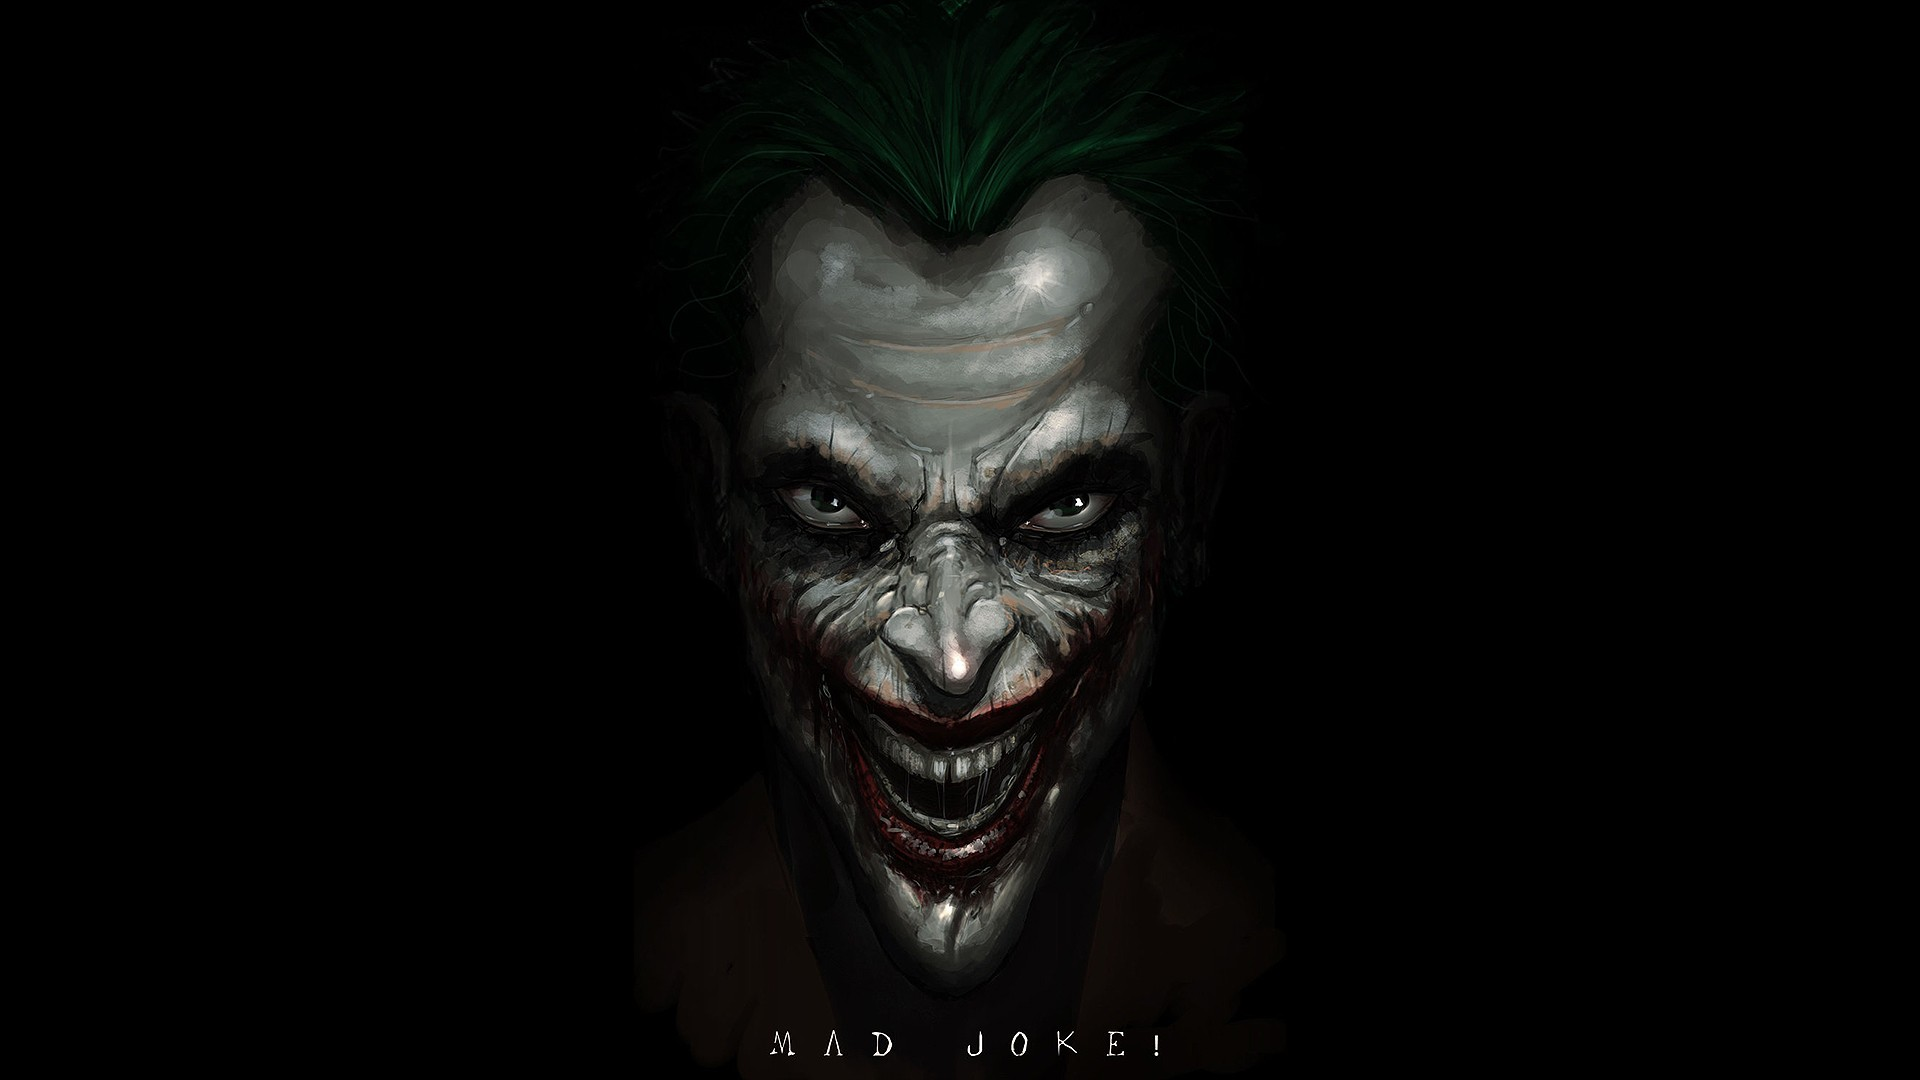 DC Comics The Joker fan art black background Wallpapers 1920x1080